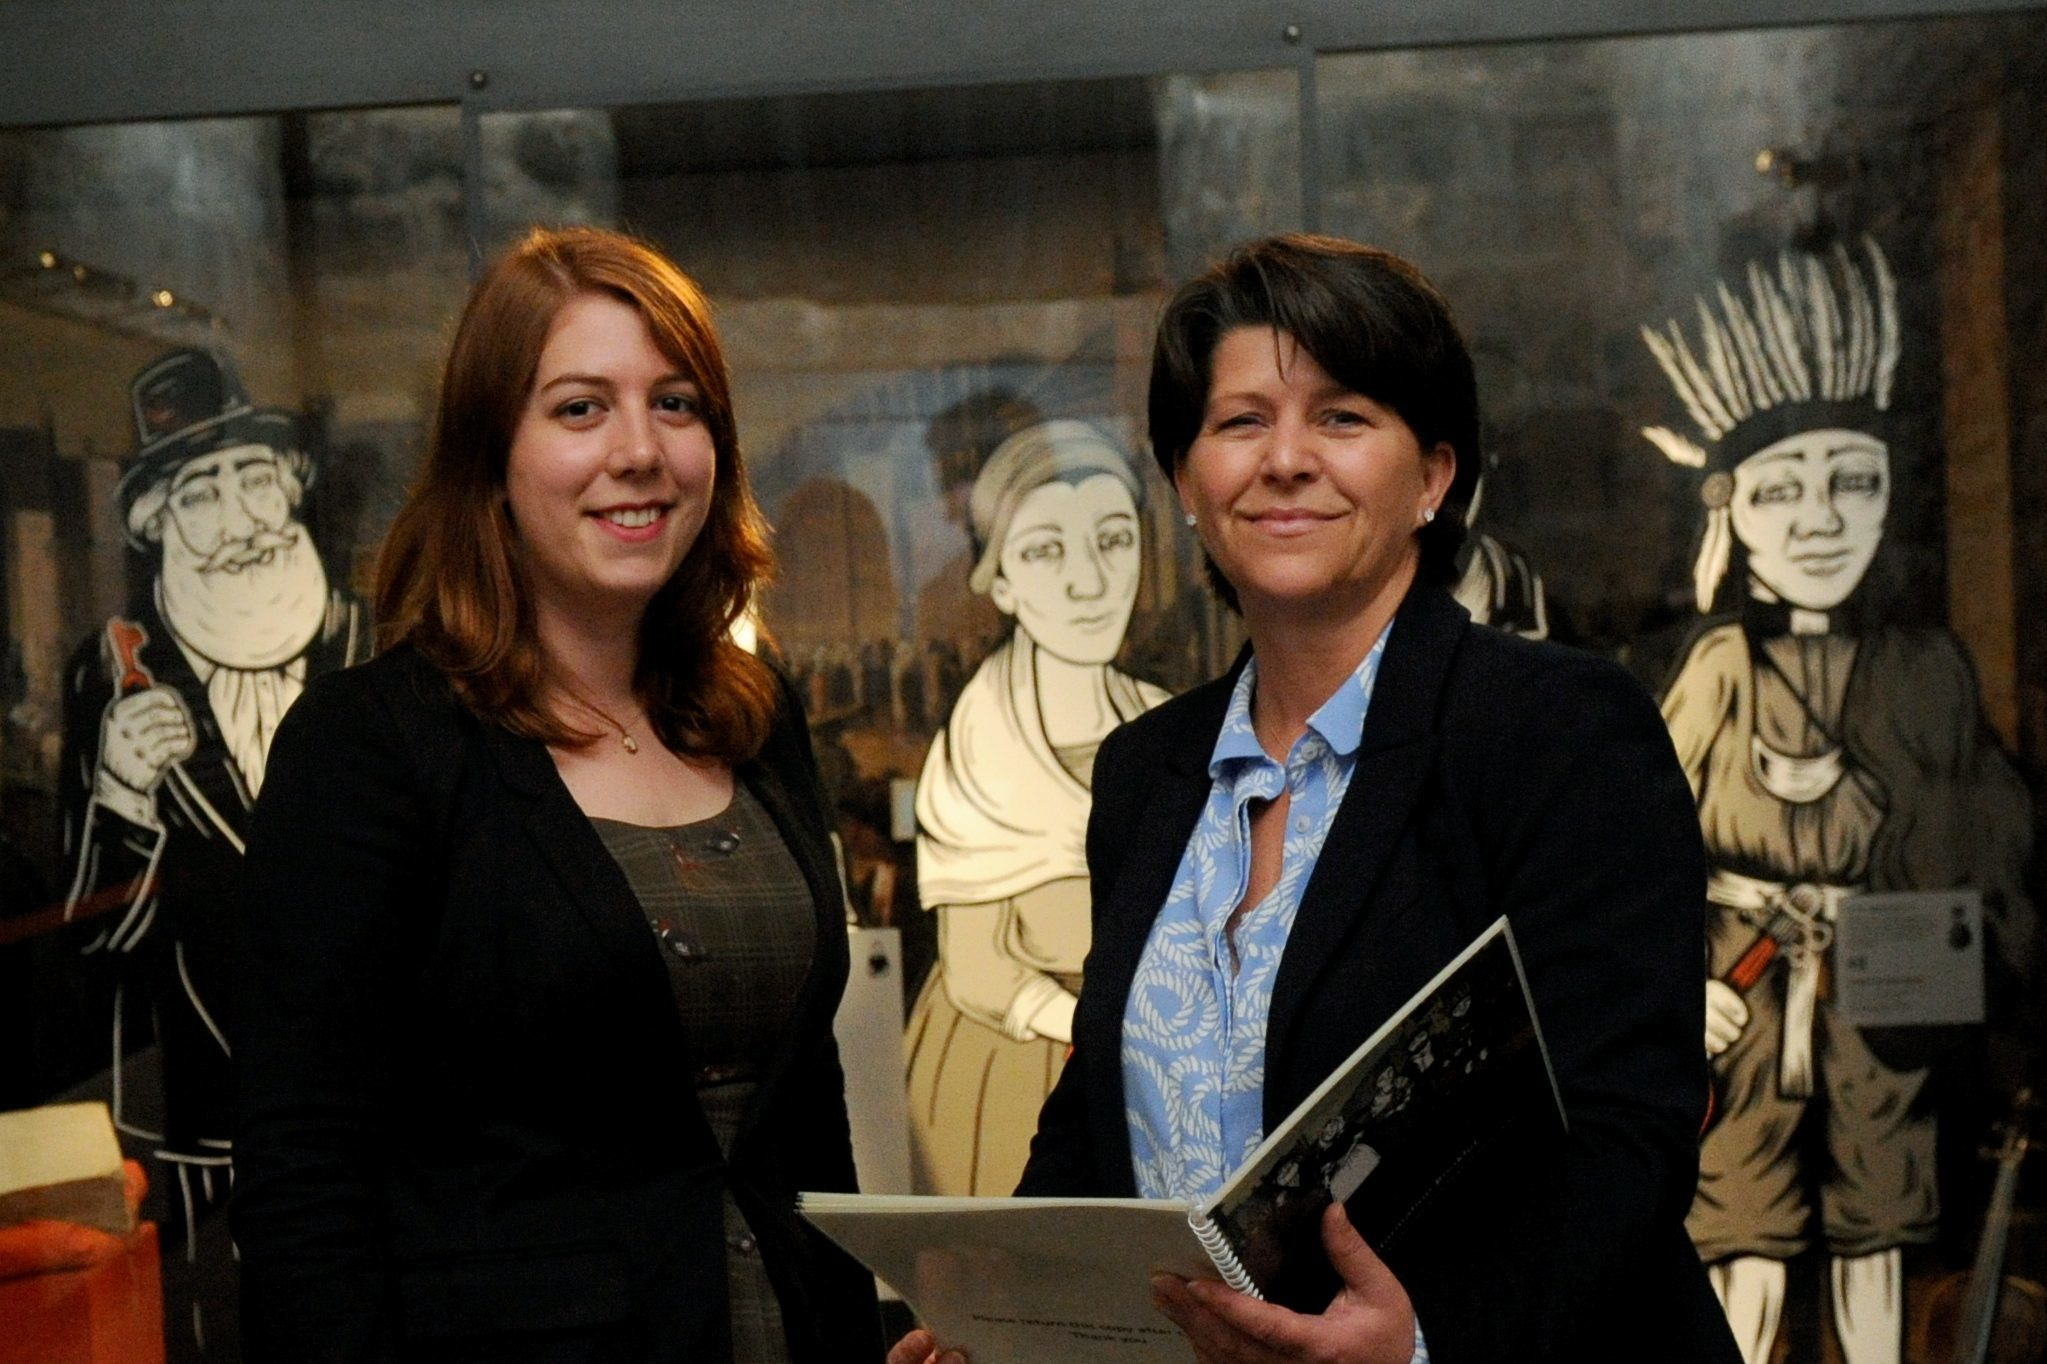 Stories:Curator Jenny Pape with Cllr Marie Boulton at the Tolbooth.